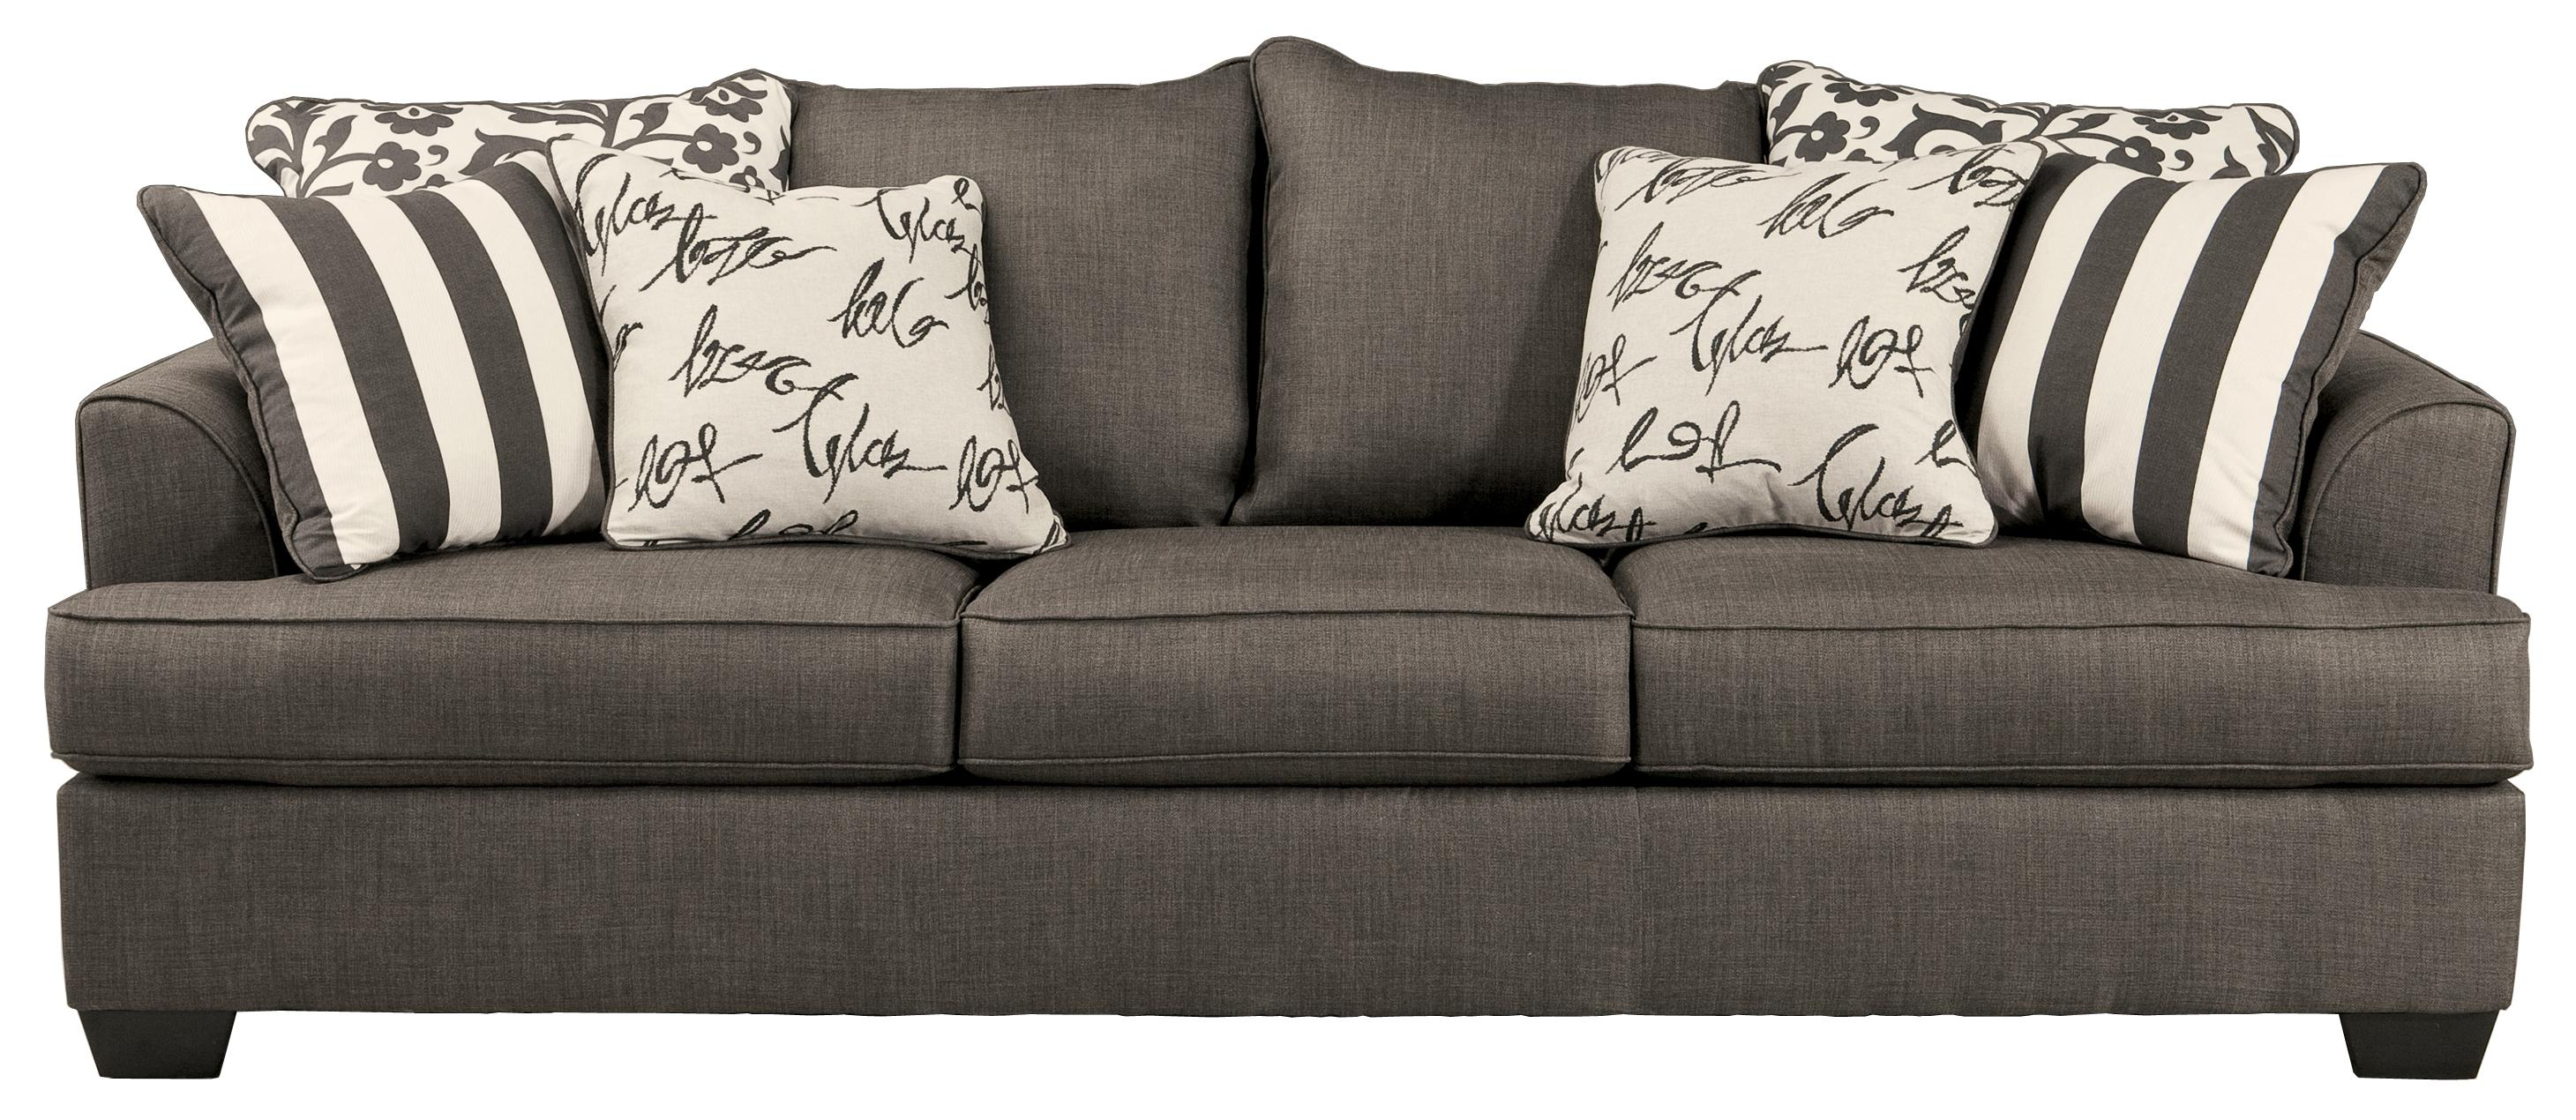 Throw Pillows For Charcoal Couch : Burgis Design Levon - Charcoal Sofa with Scatterback Pillows and Plush Coil Seat Cushions ...